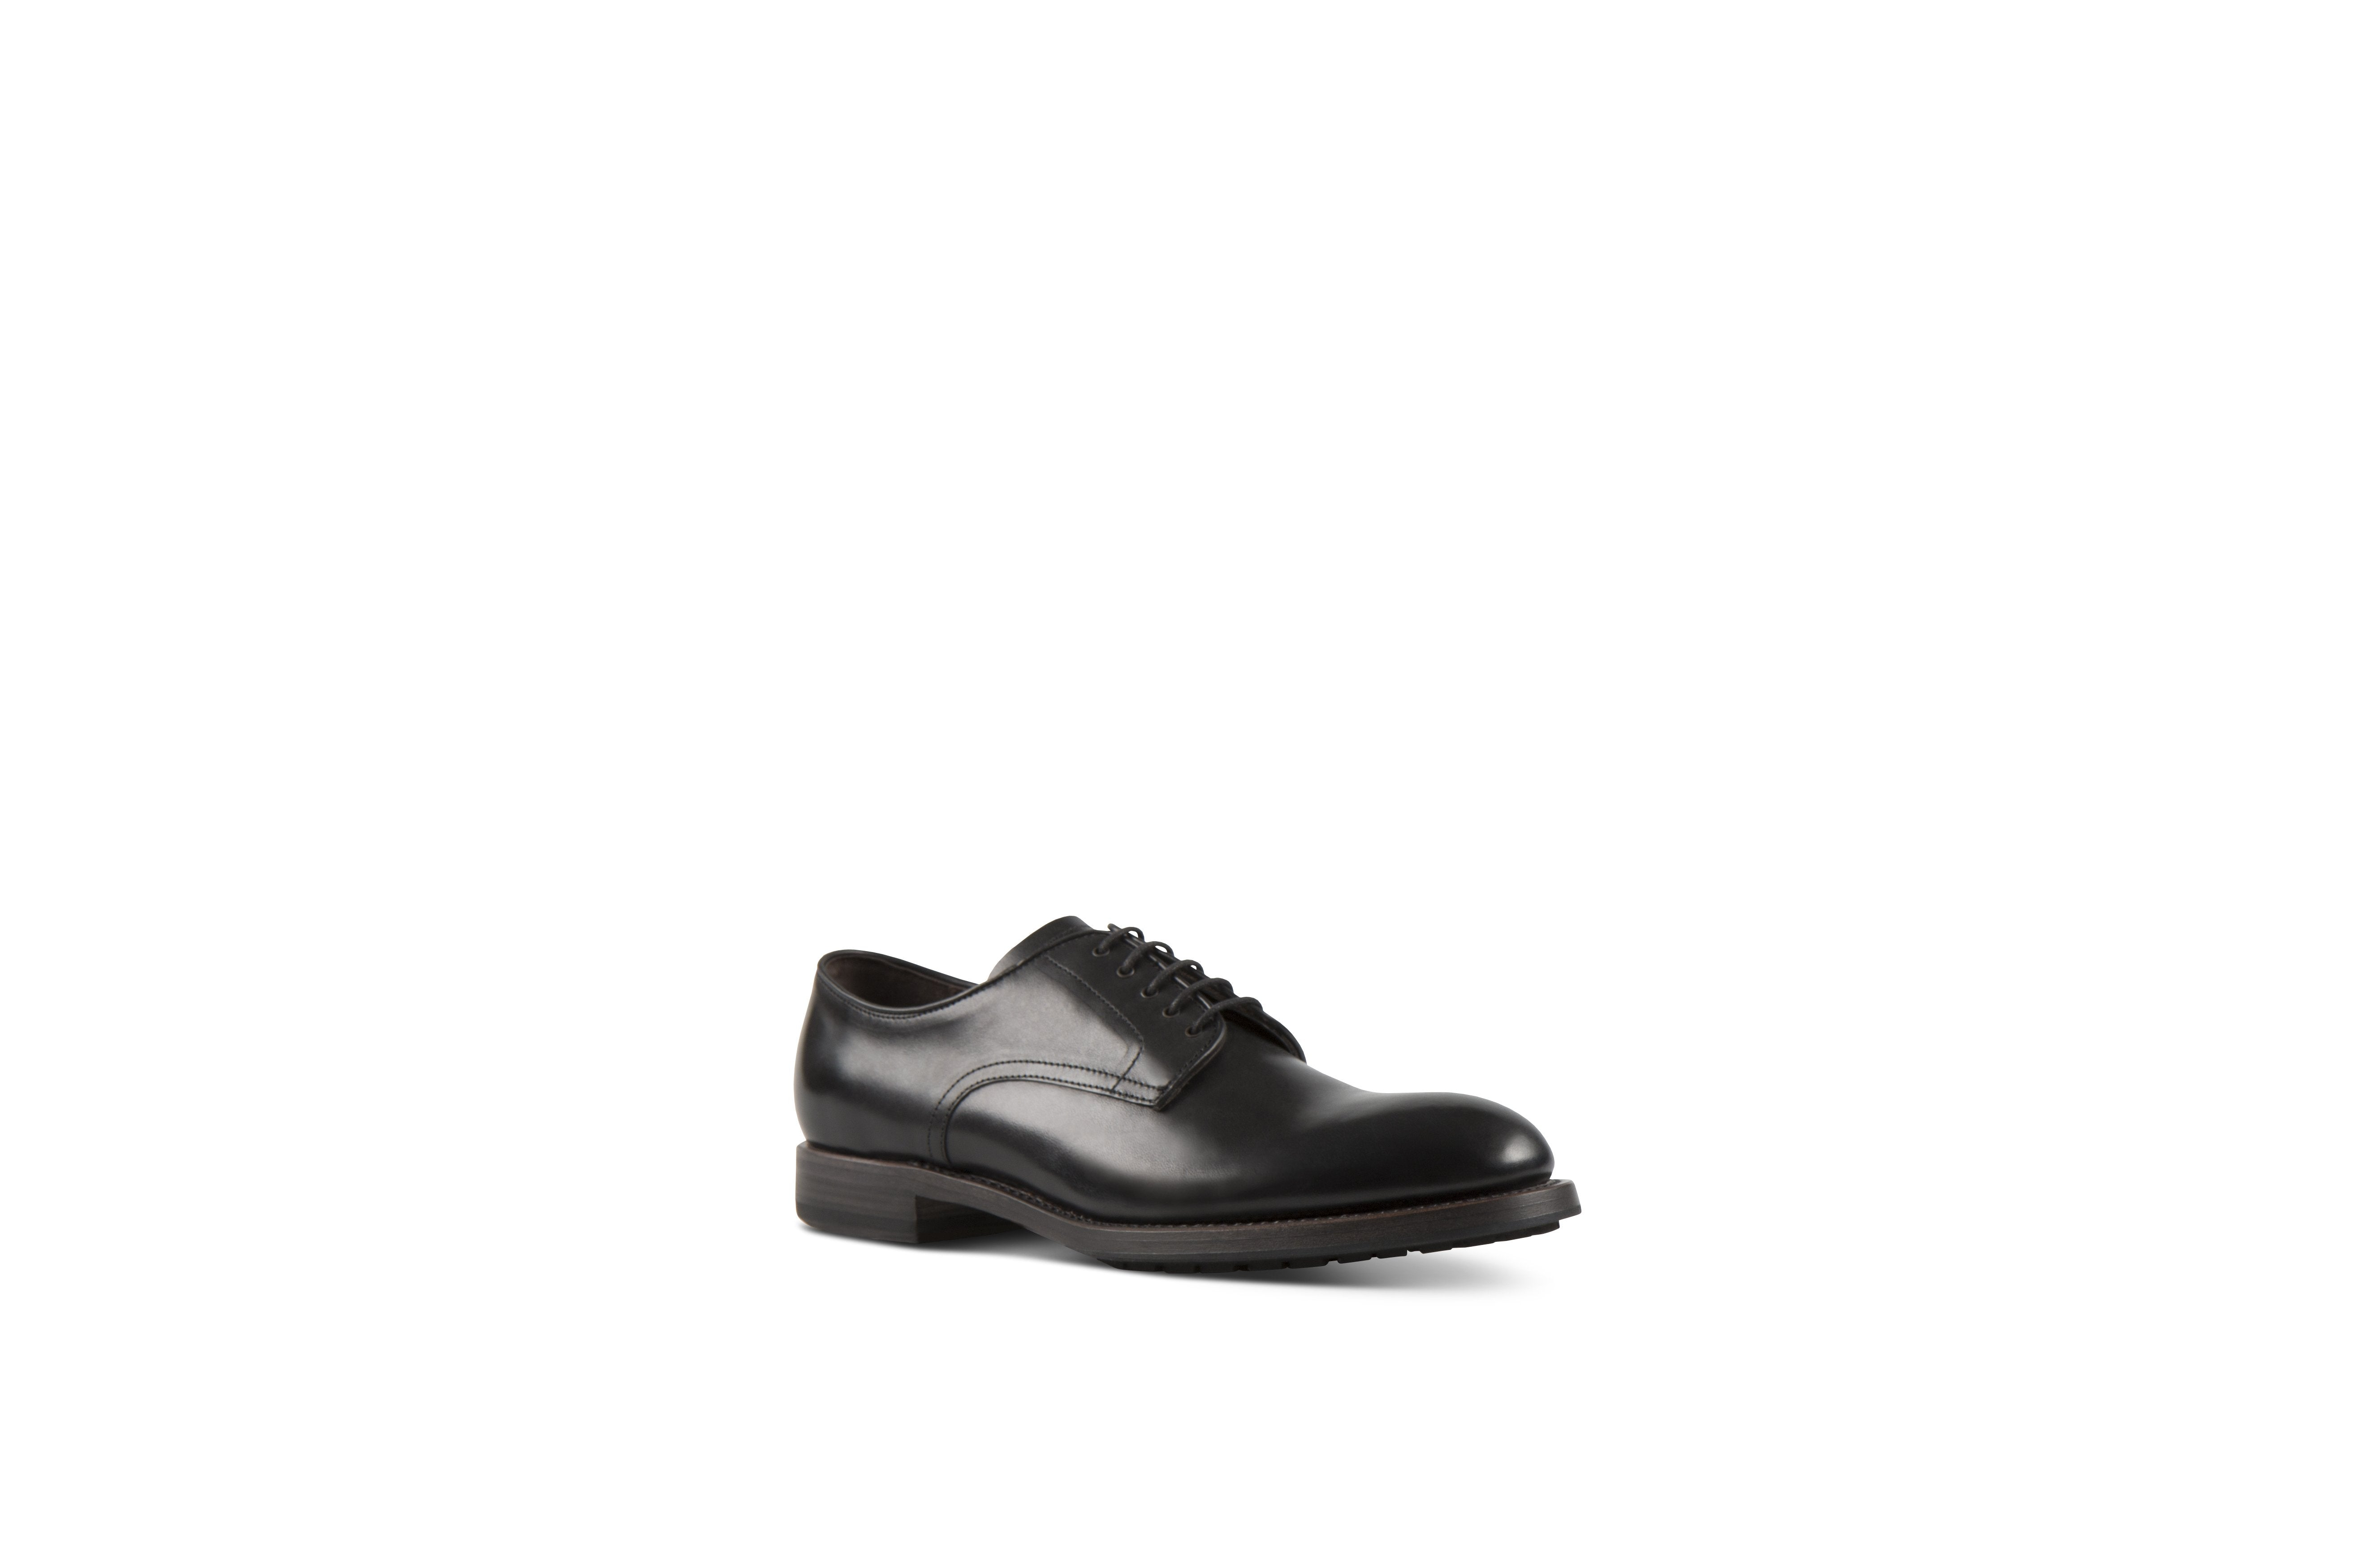 Daze Black Cordovan Leather Shoes